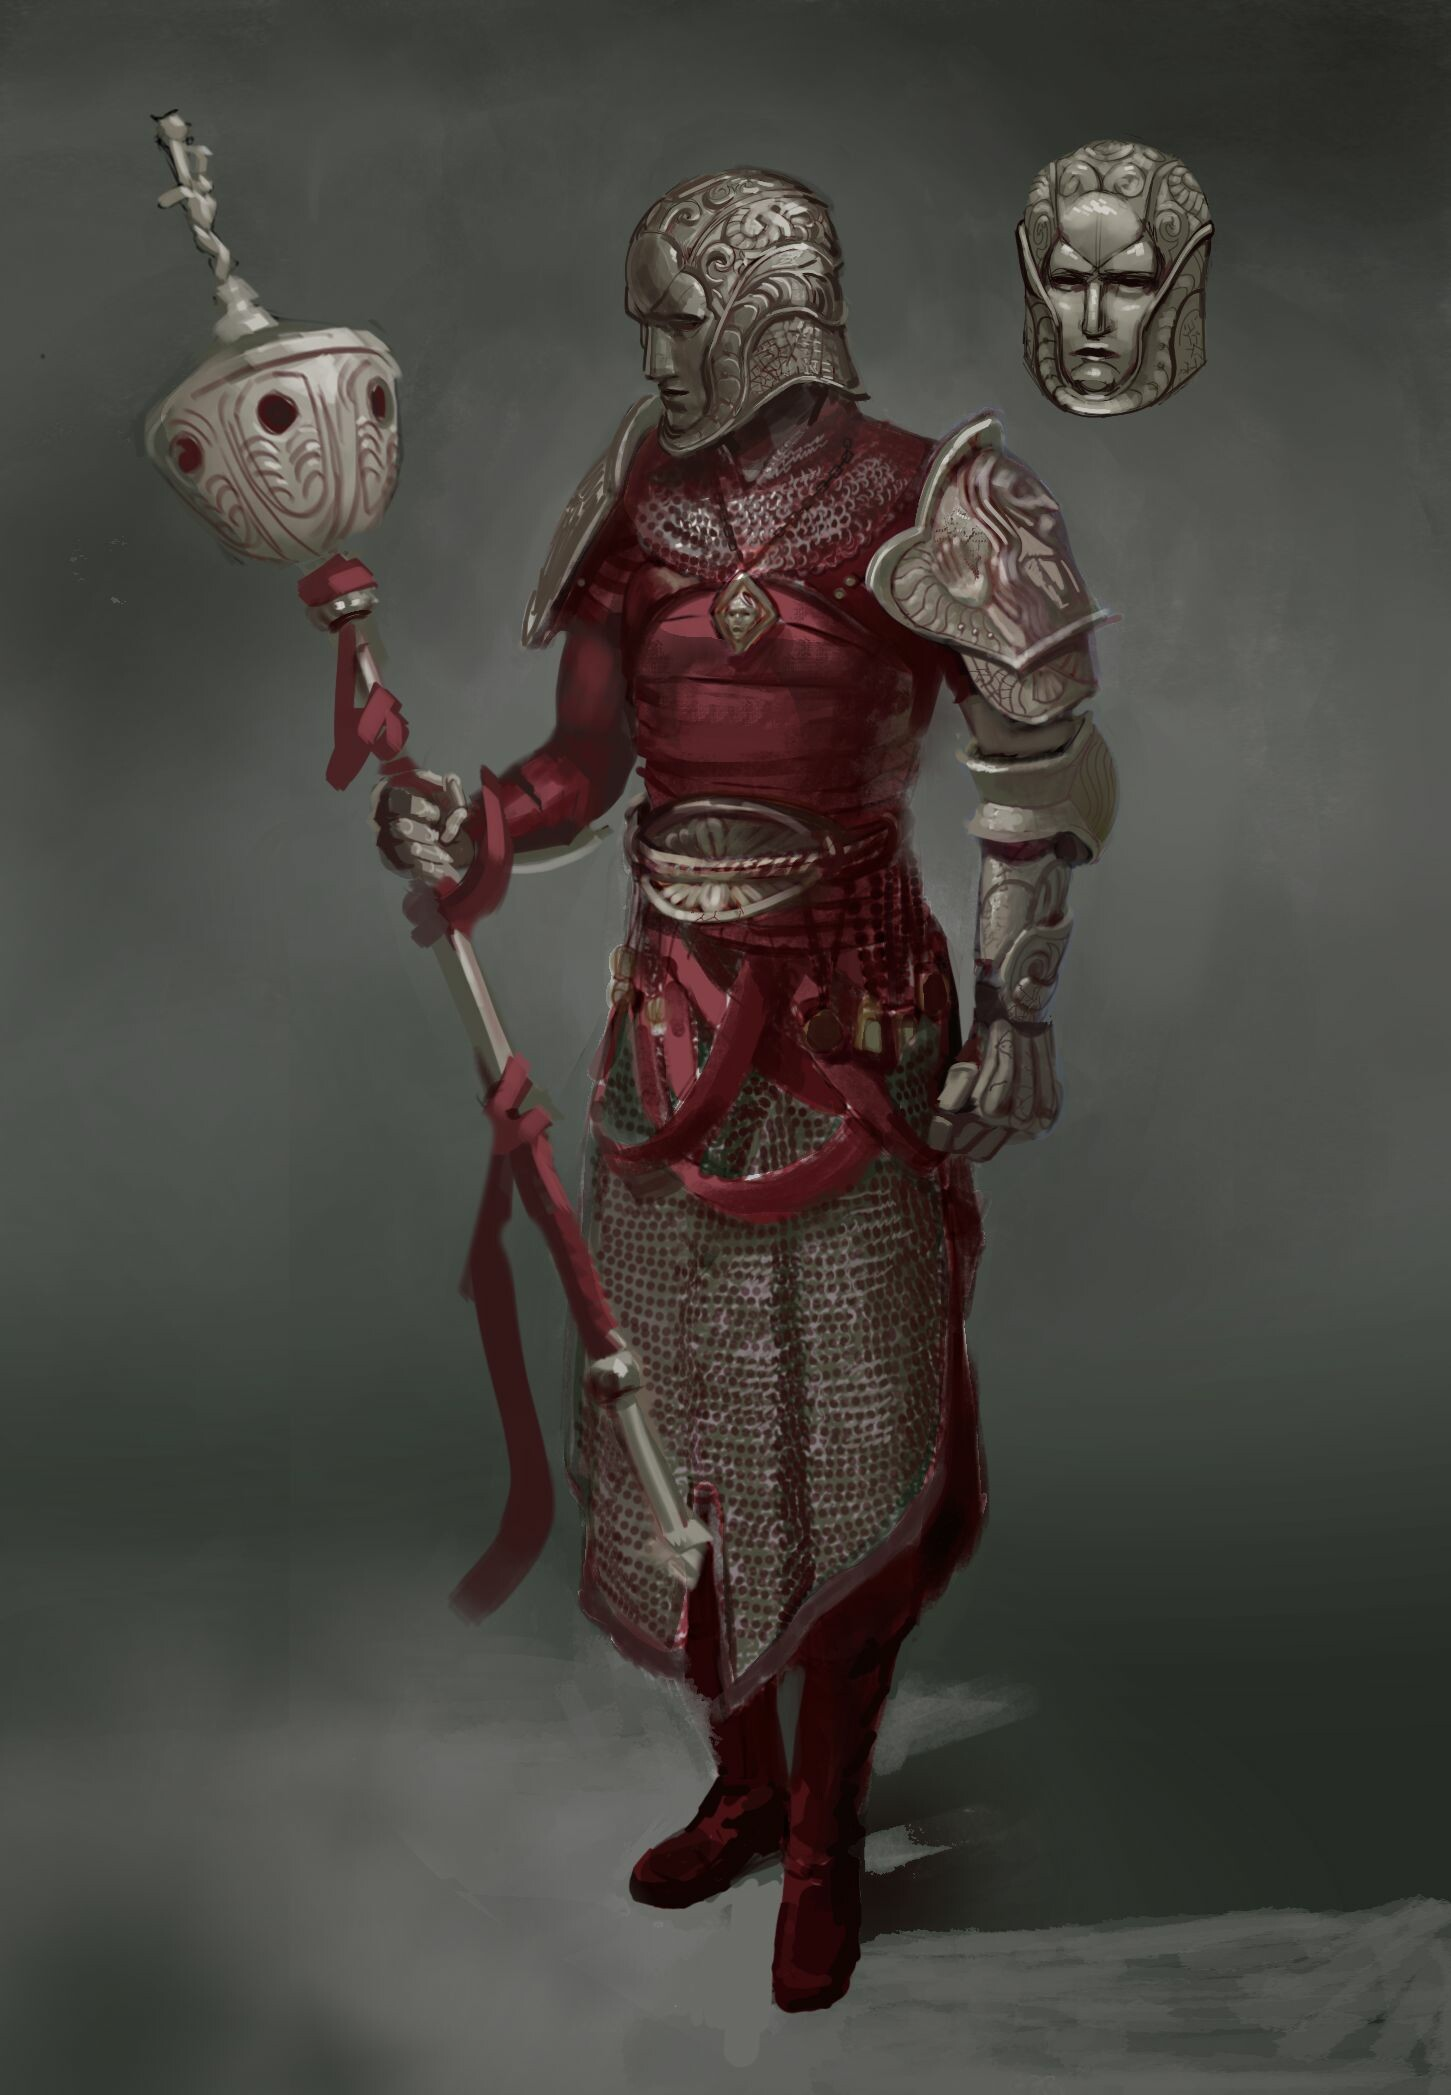 Ecclessiae Soldier, the complete outfit and helmet of the members of the order.